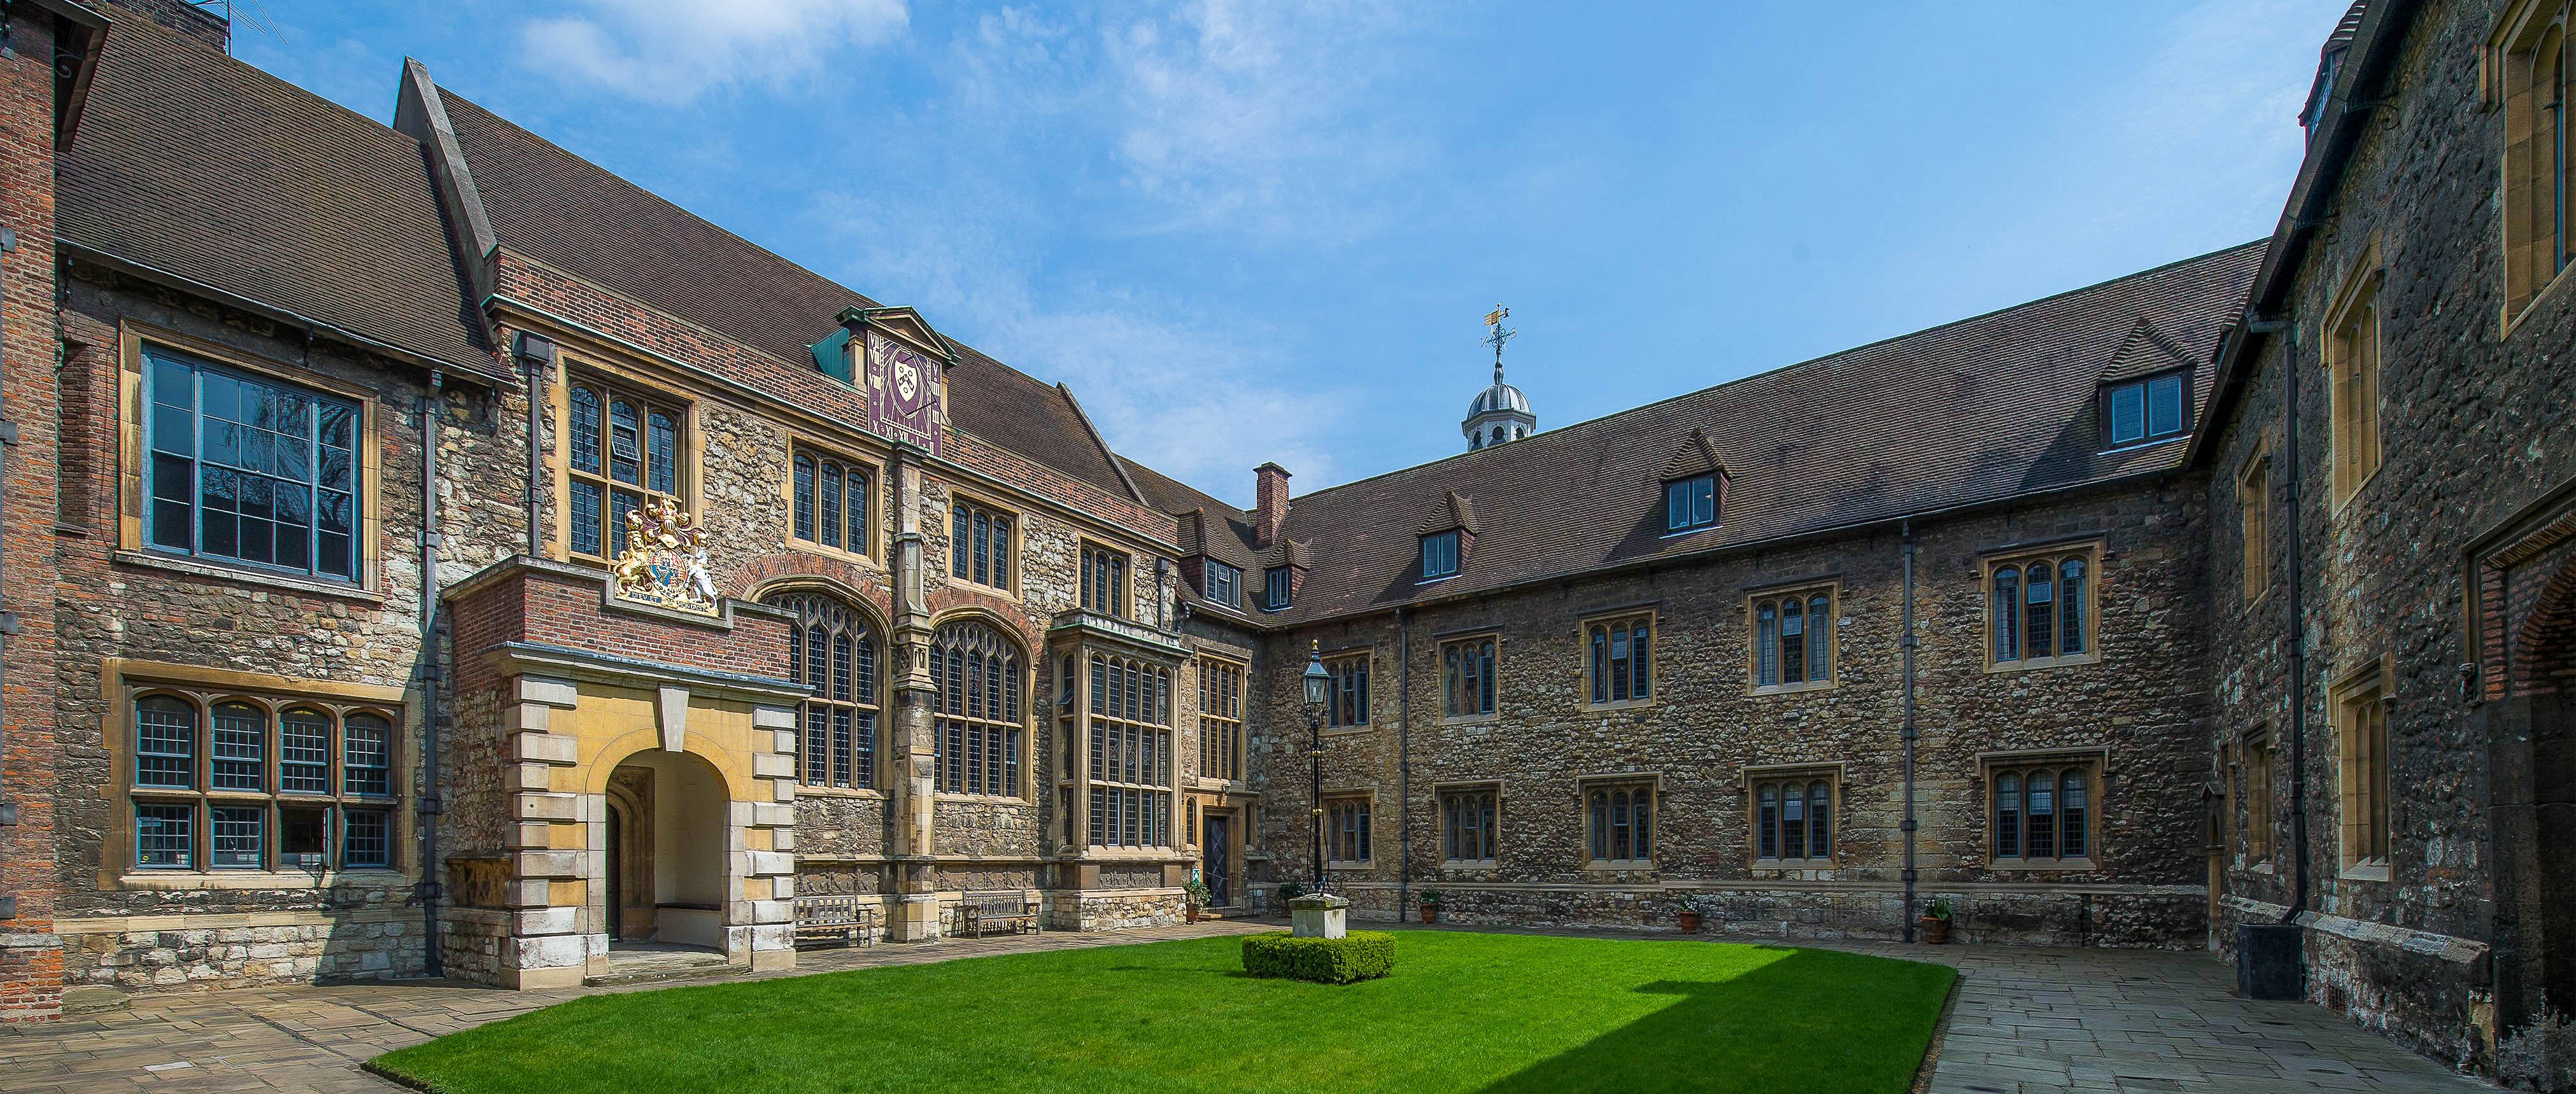 The Charterhouse Great Hall, designed in the sixteenth century by Sir Edward North. Image courtesy of the The Charterhouse.